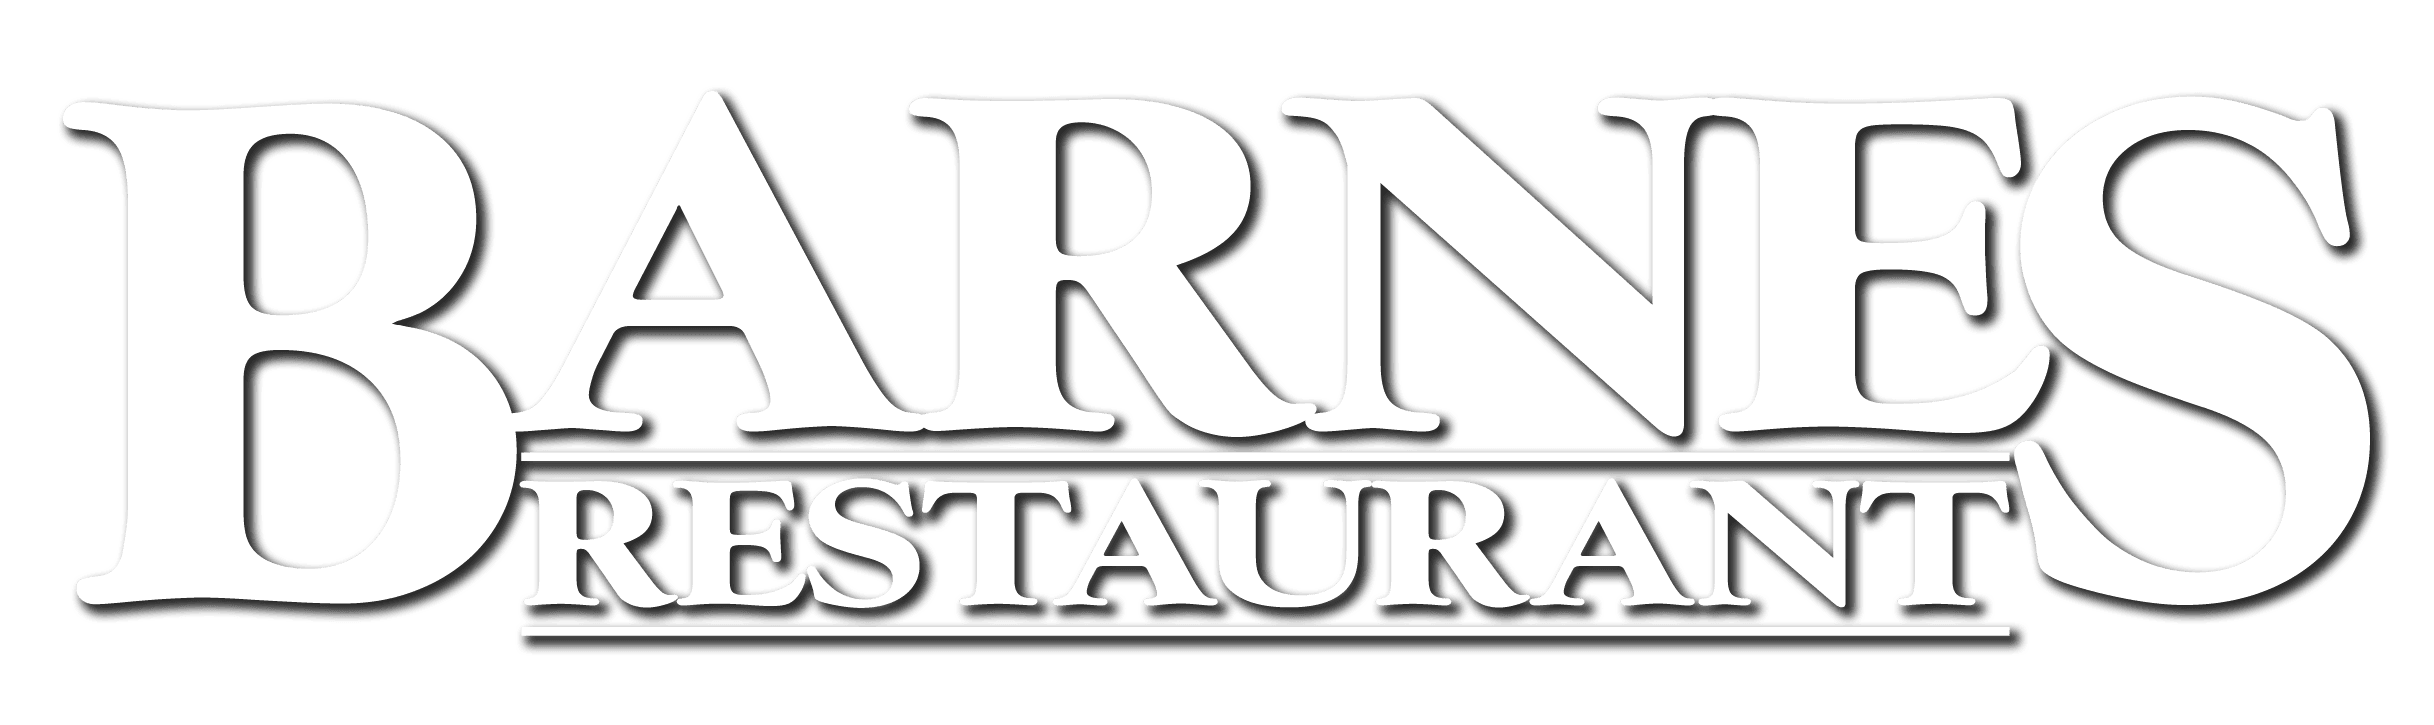 Home   Barnes Restaurant and Catering